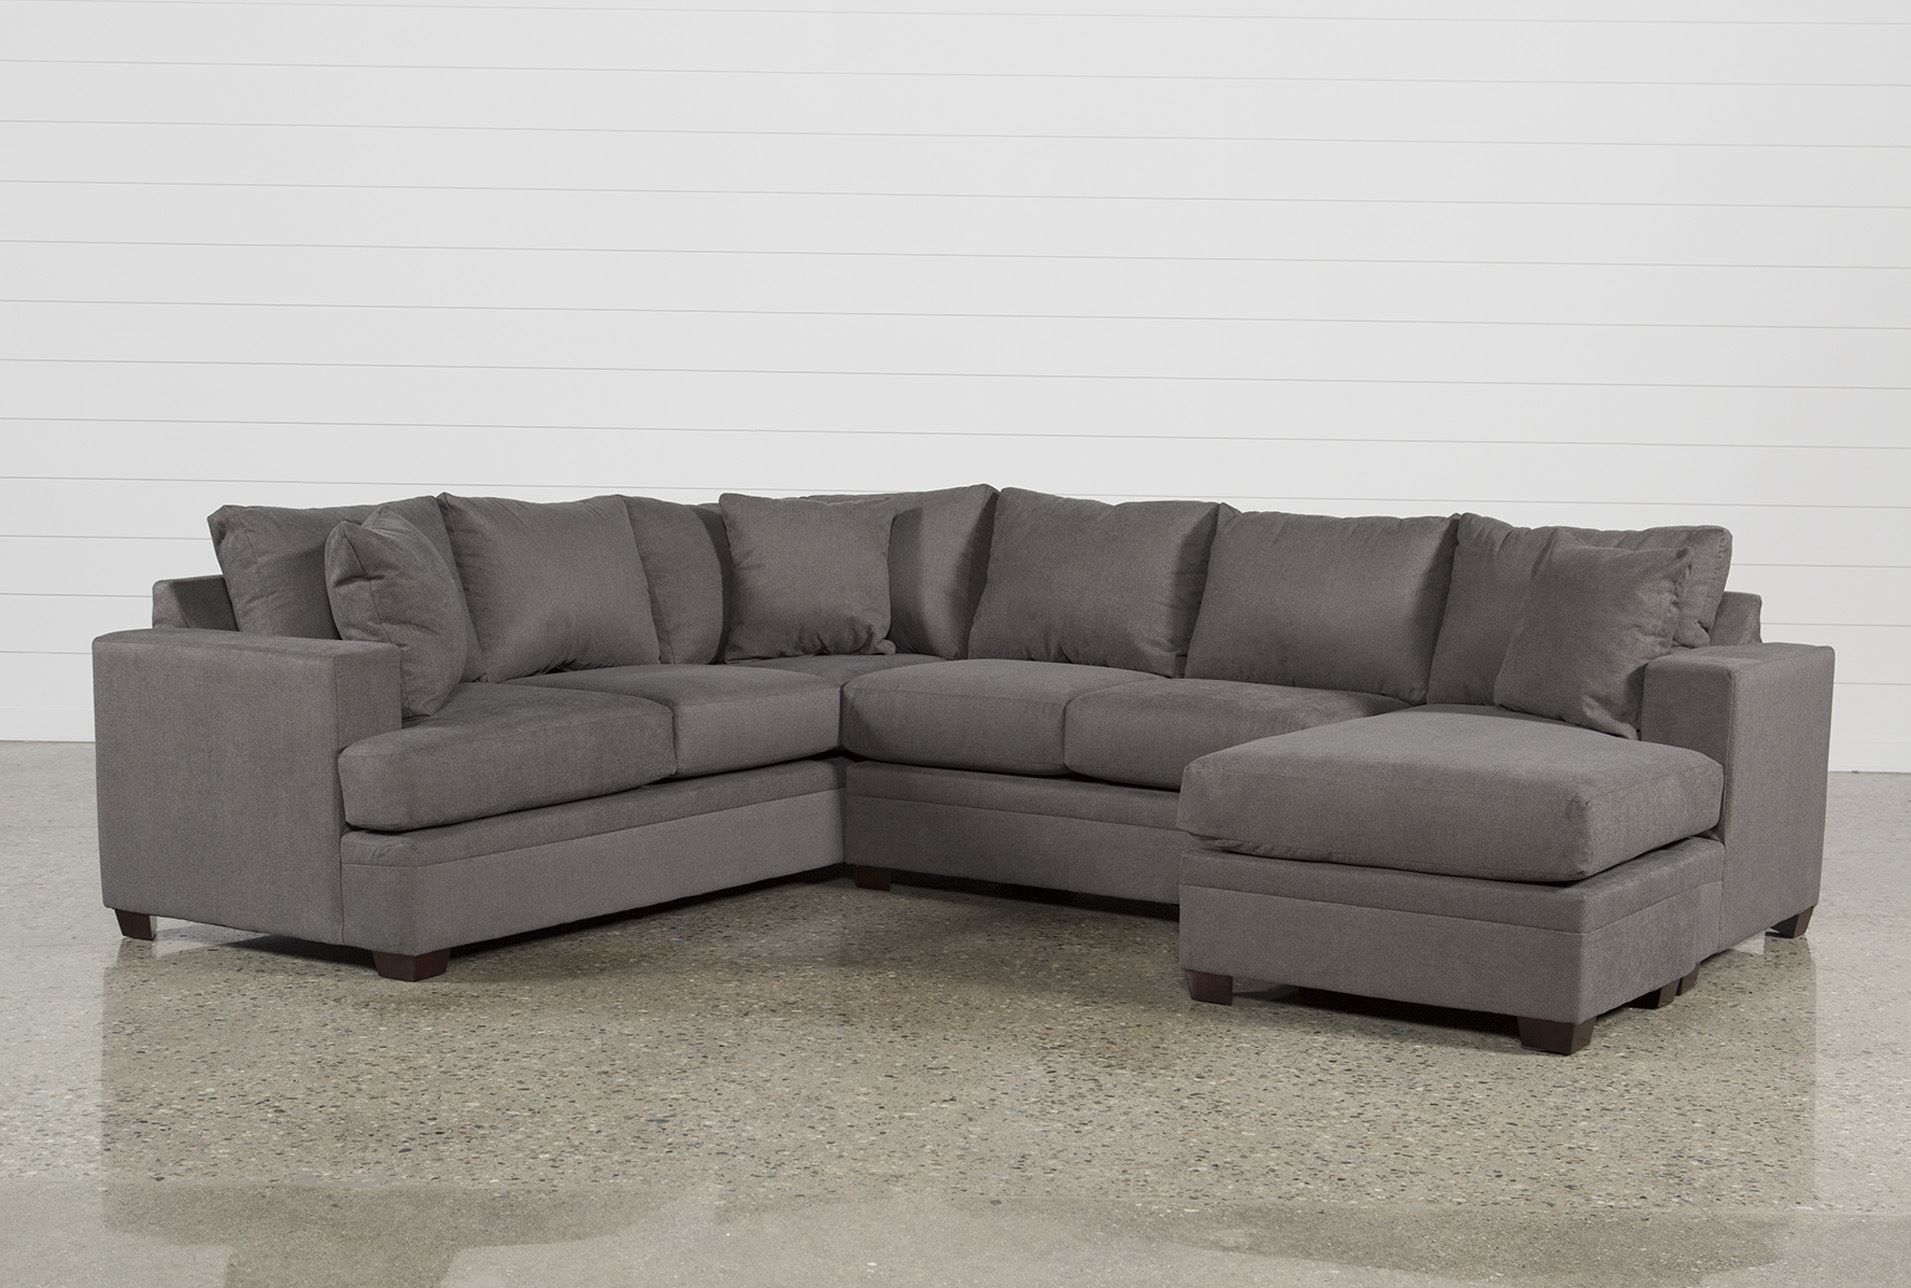 Kerri 2 Piece Sectional W/raf Chaise In 2018 | Products | Pinterest with regard to Lucy Grey 2 Piece Sectionals With Raf Chaise (Image 14 of 30)